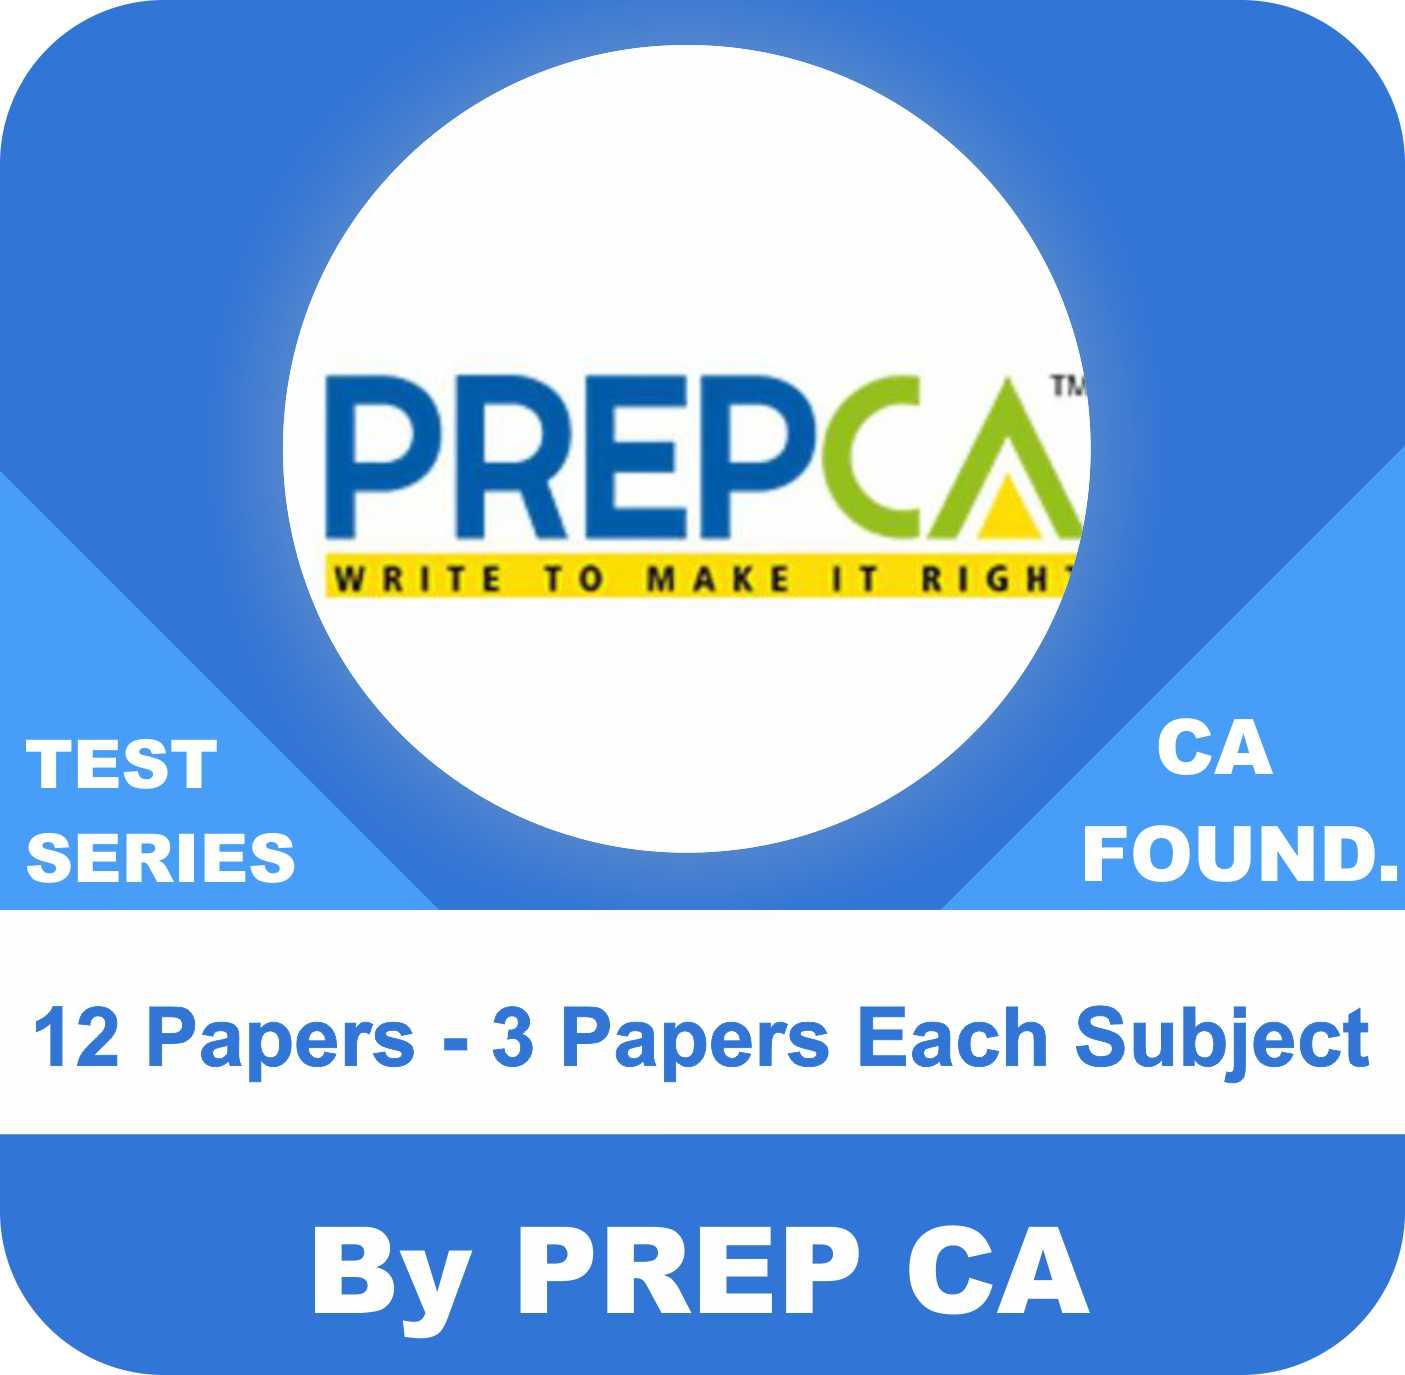 CA Foundation All Subject Three Paper Each Subject Test Series in Standard Program by PREPCA